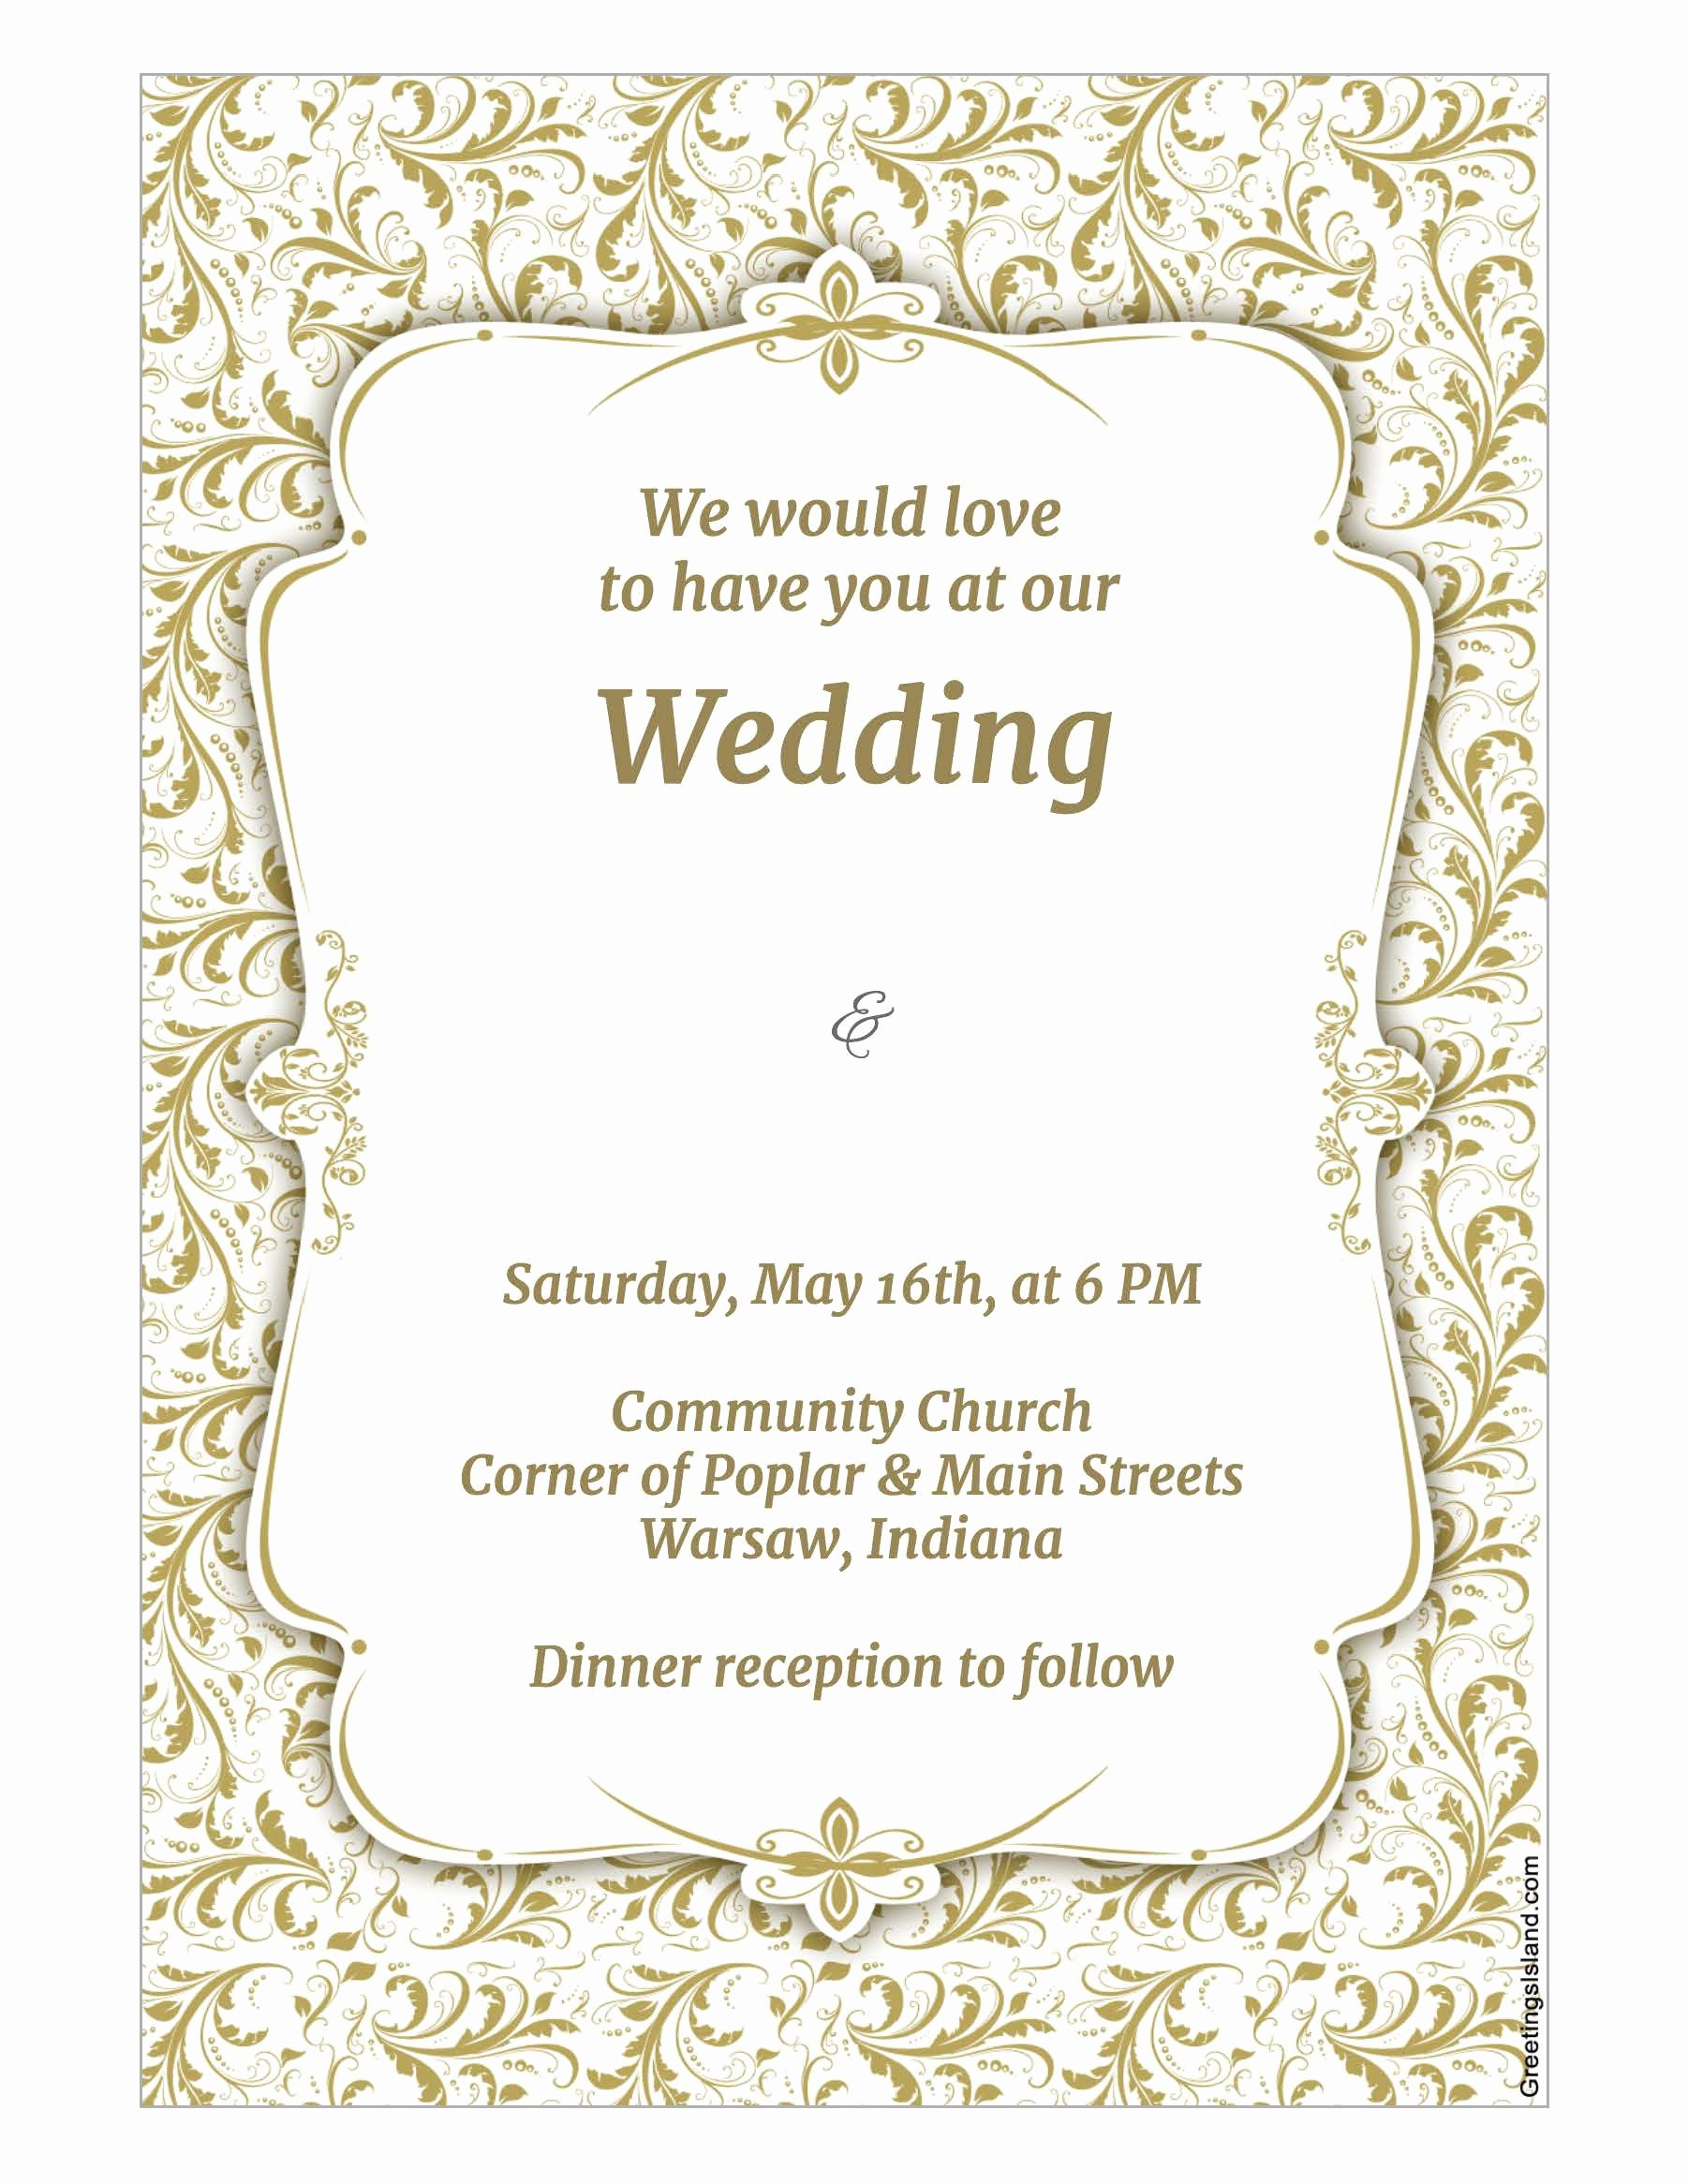 Wedding Invitations Photoshop Template Inspirational Wedding Invitation Template Wedding Invitation Template